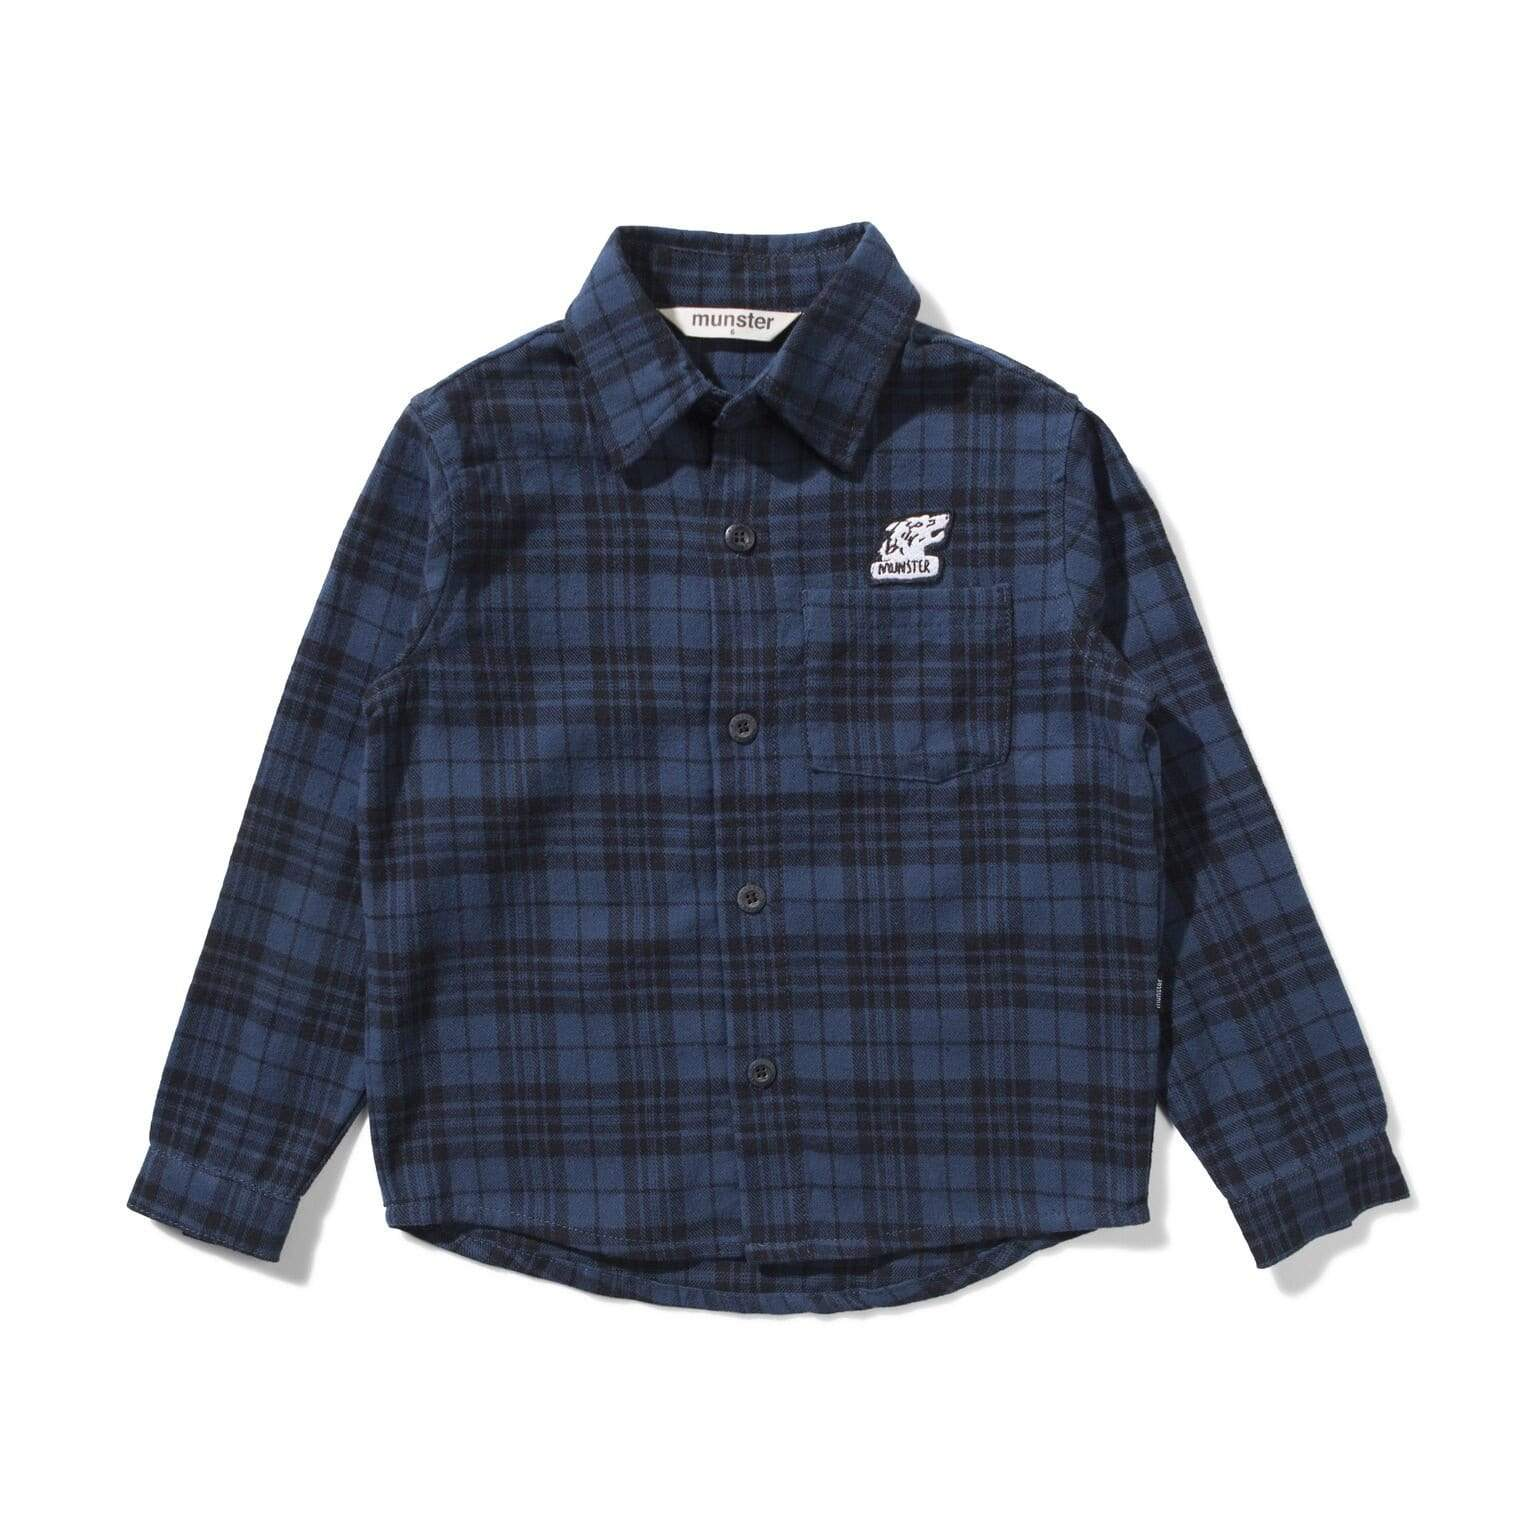 Niseiko Shirt - Blue